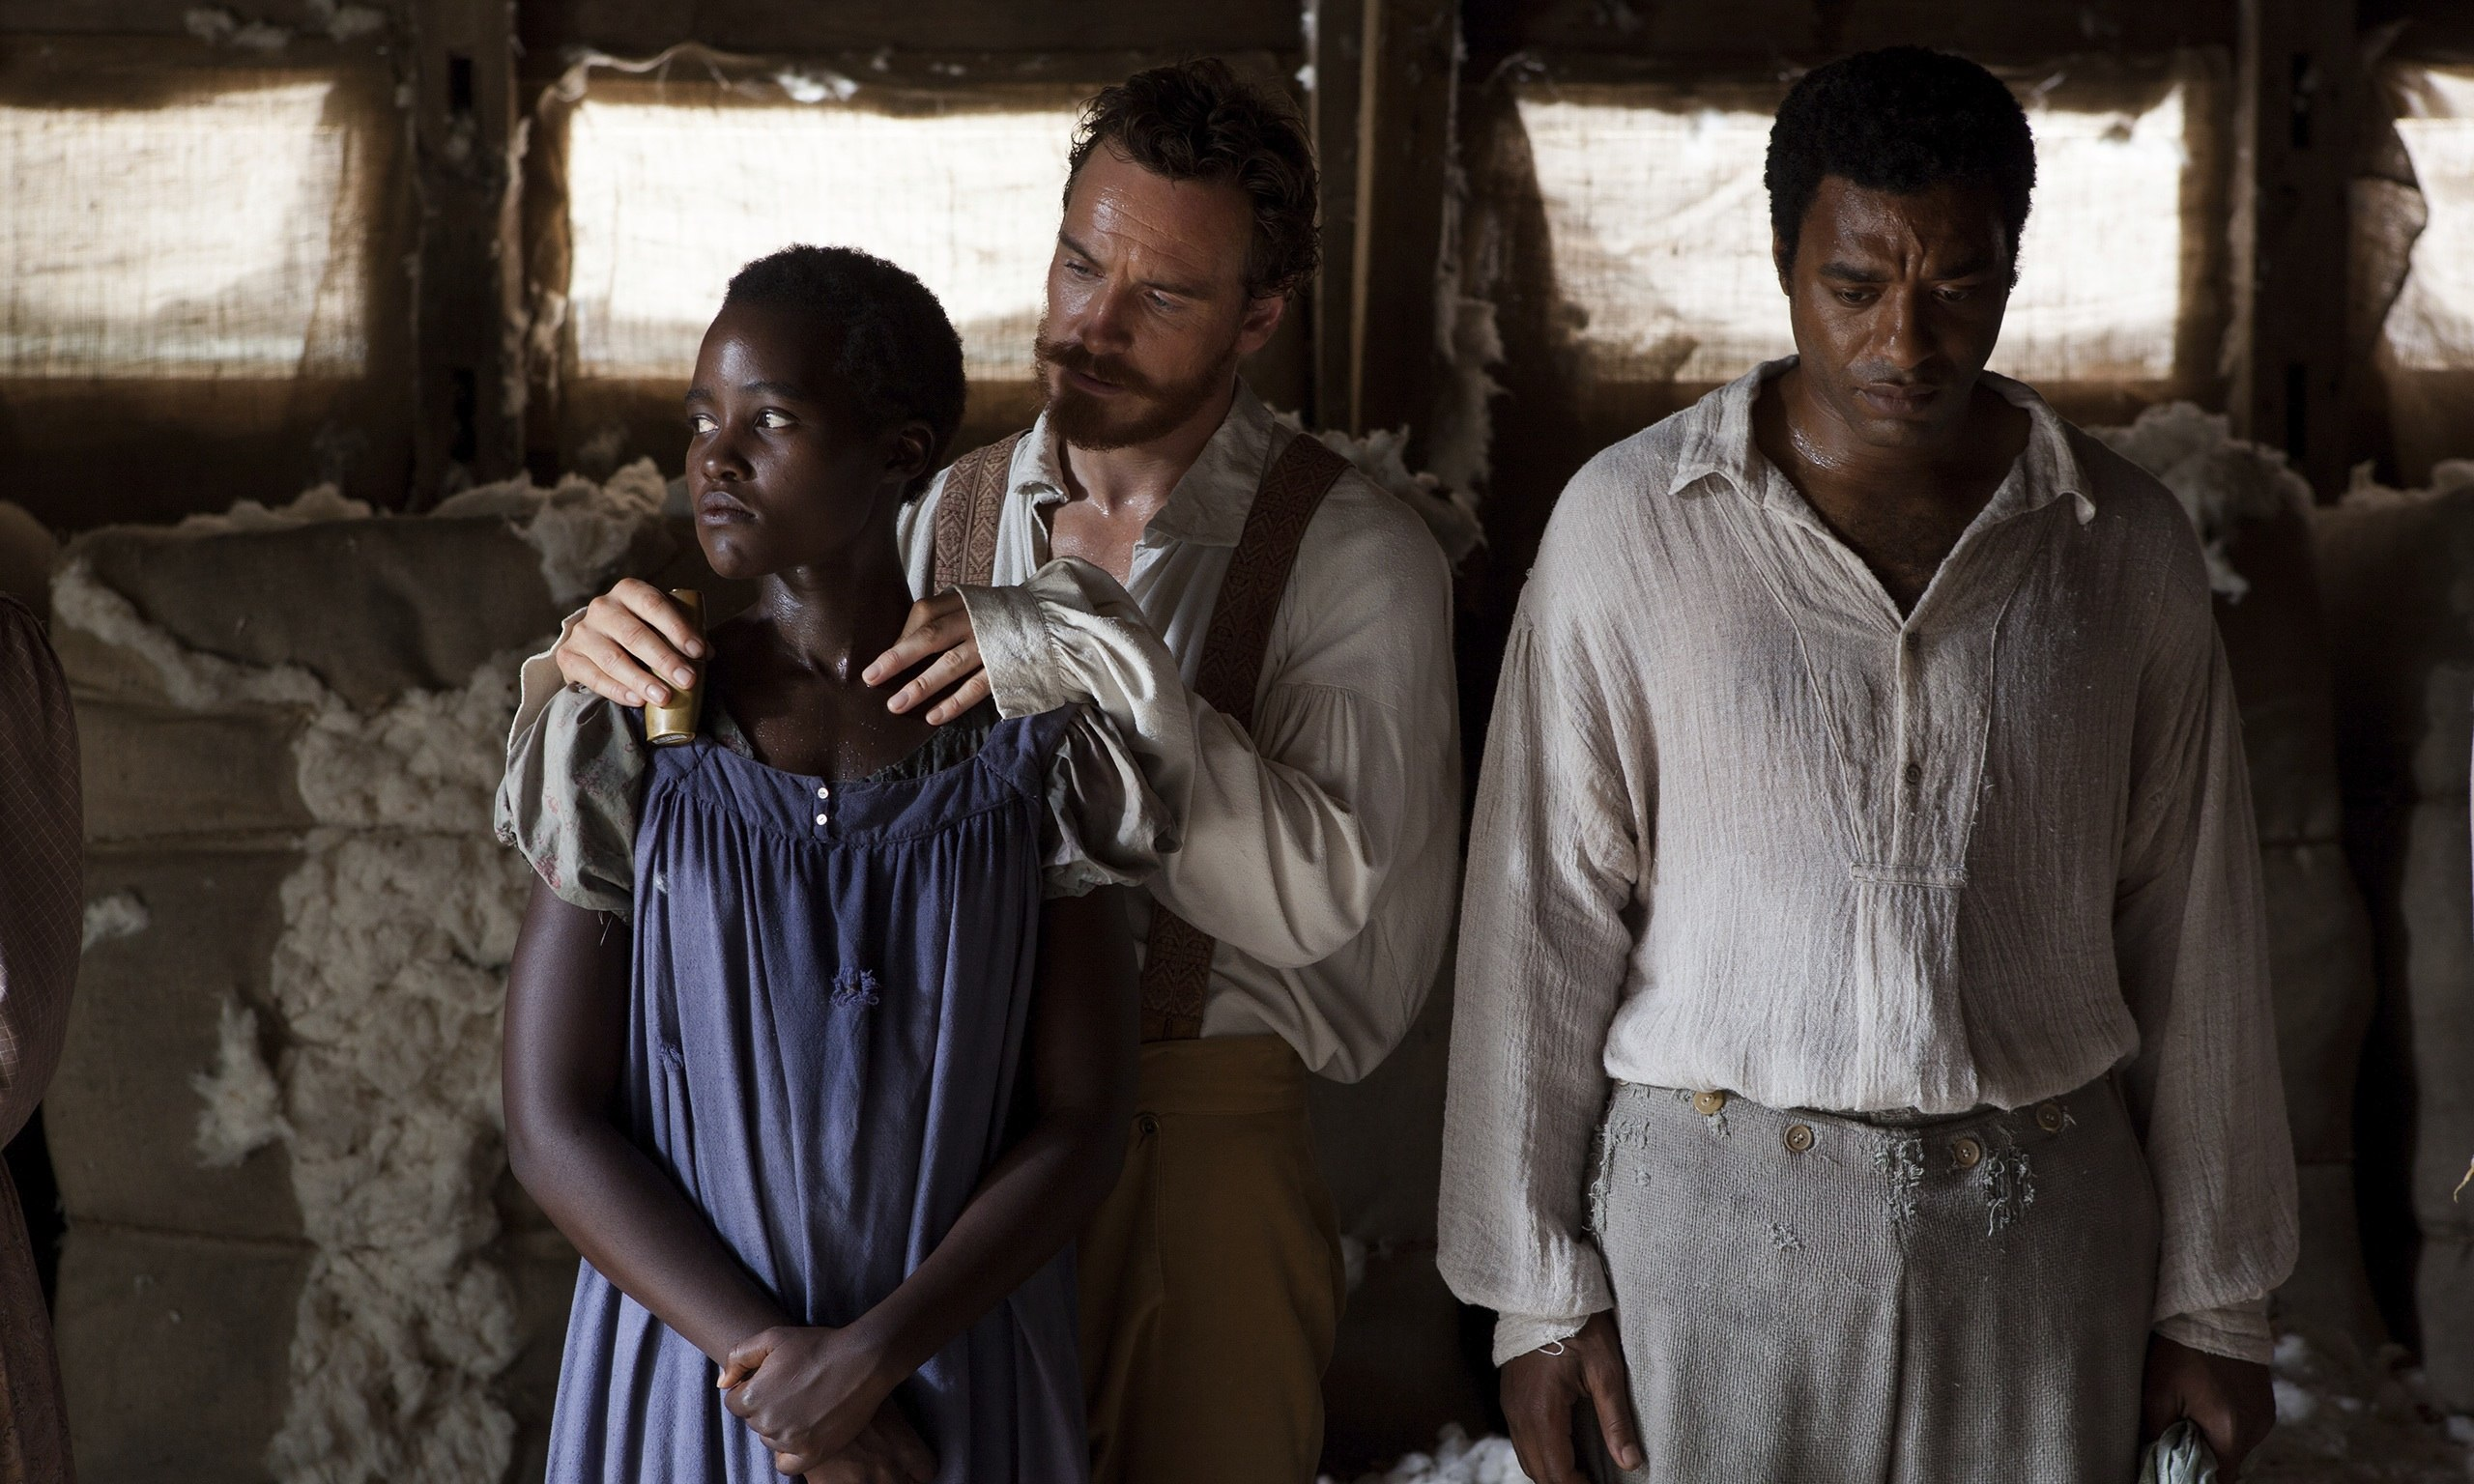 10 Real Facts About Slavery That Hollywood Never Gets Right